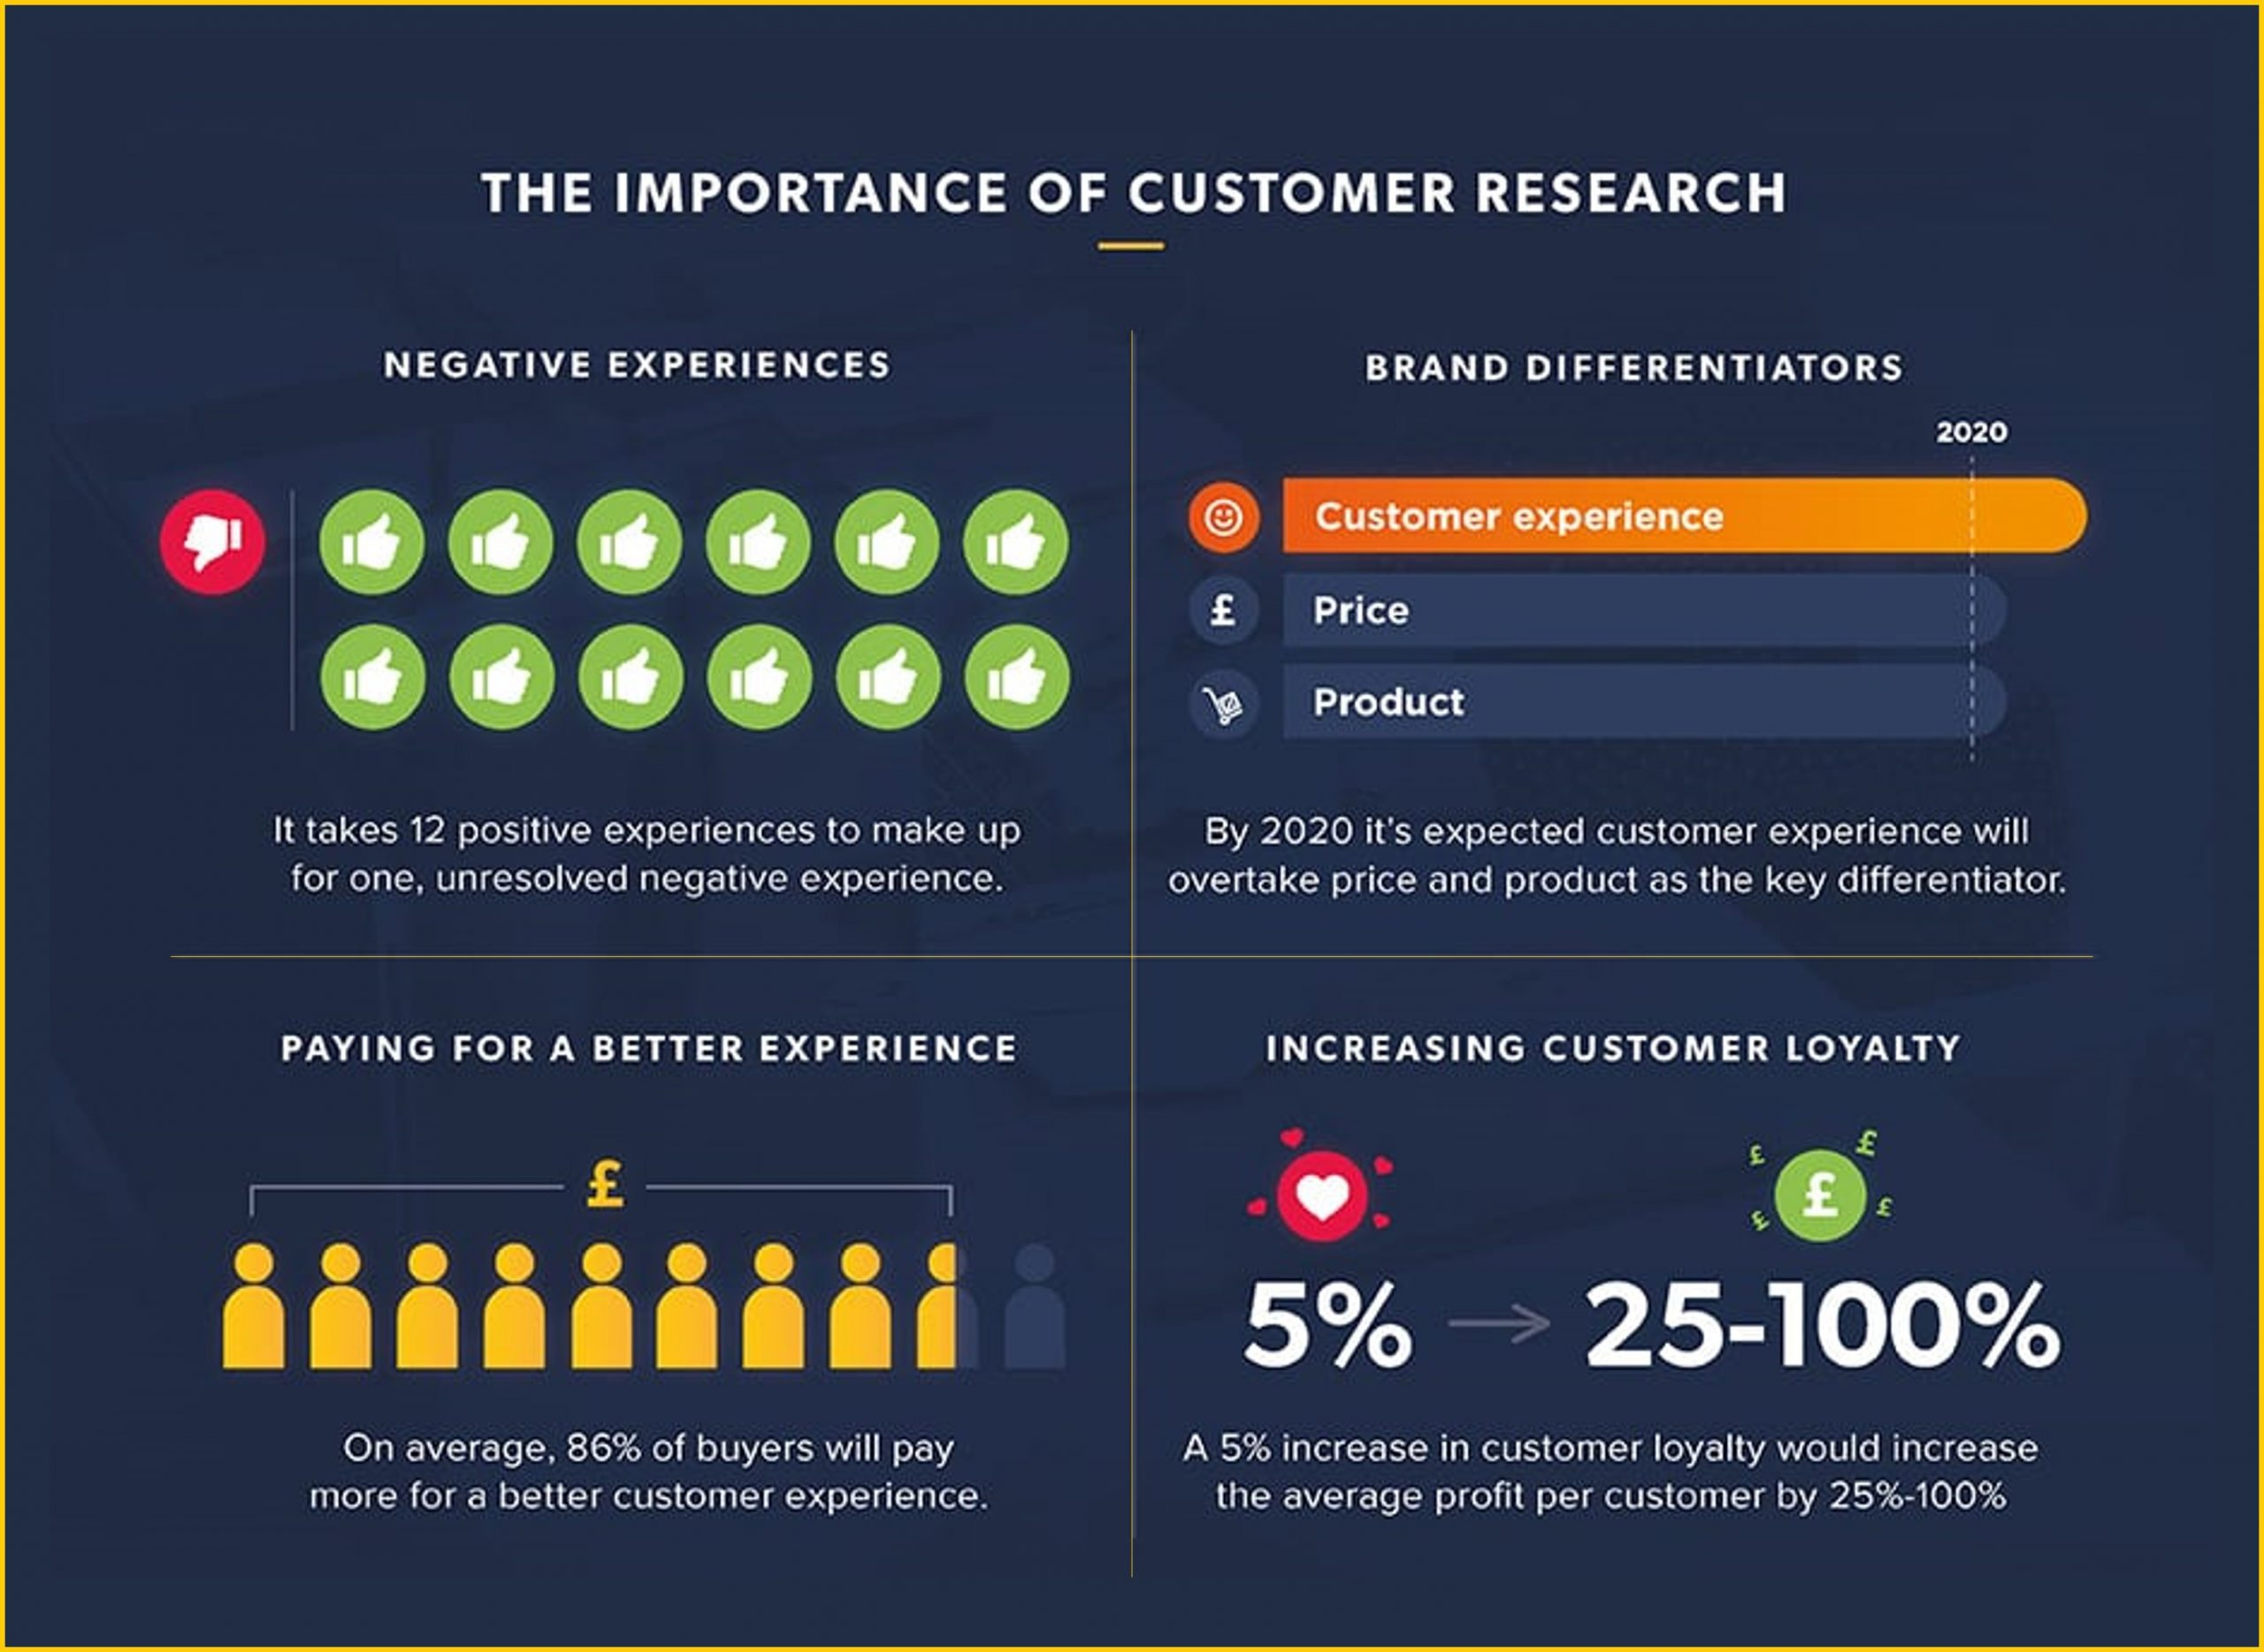 importance of customer research statistics image